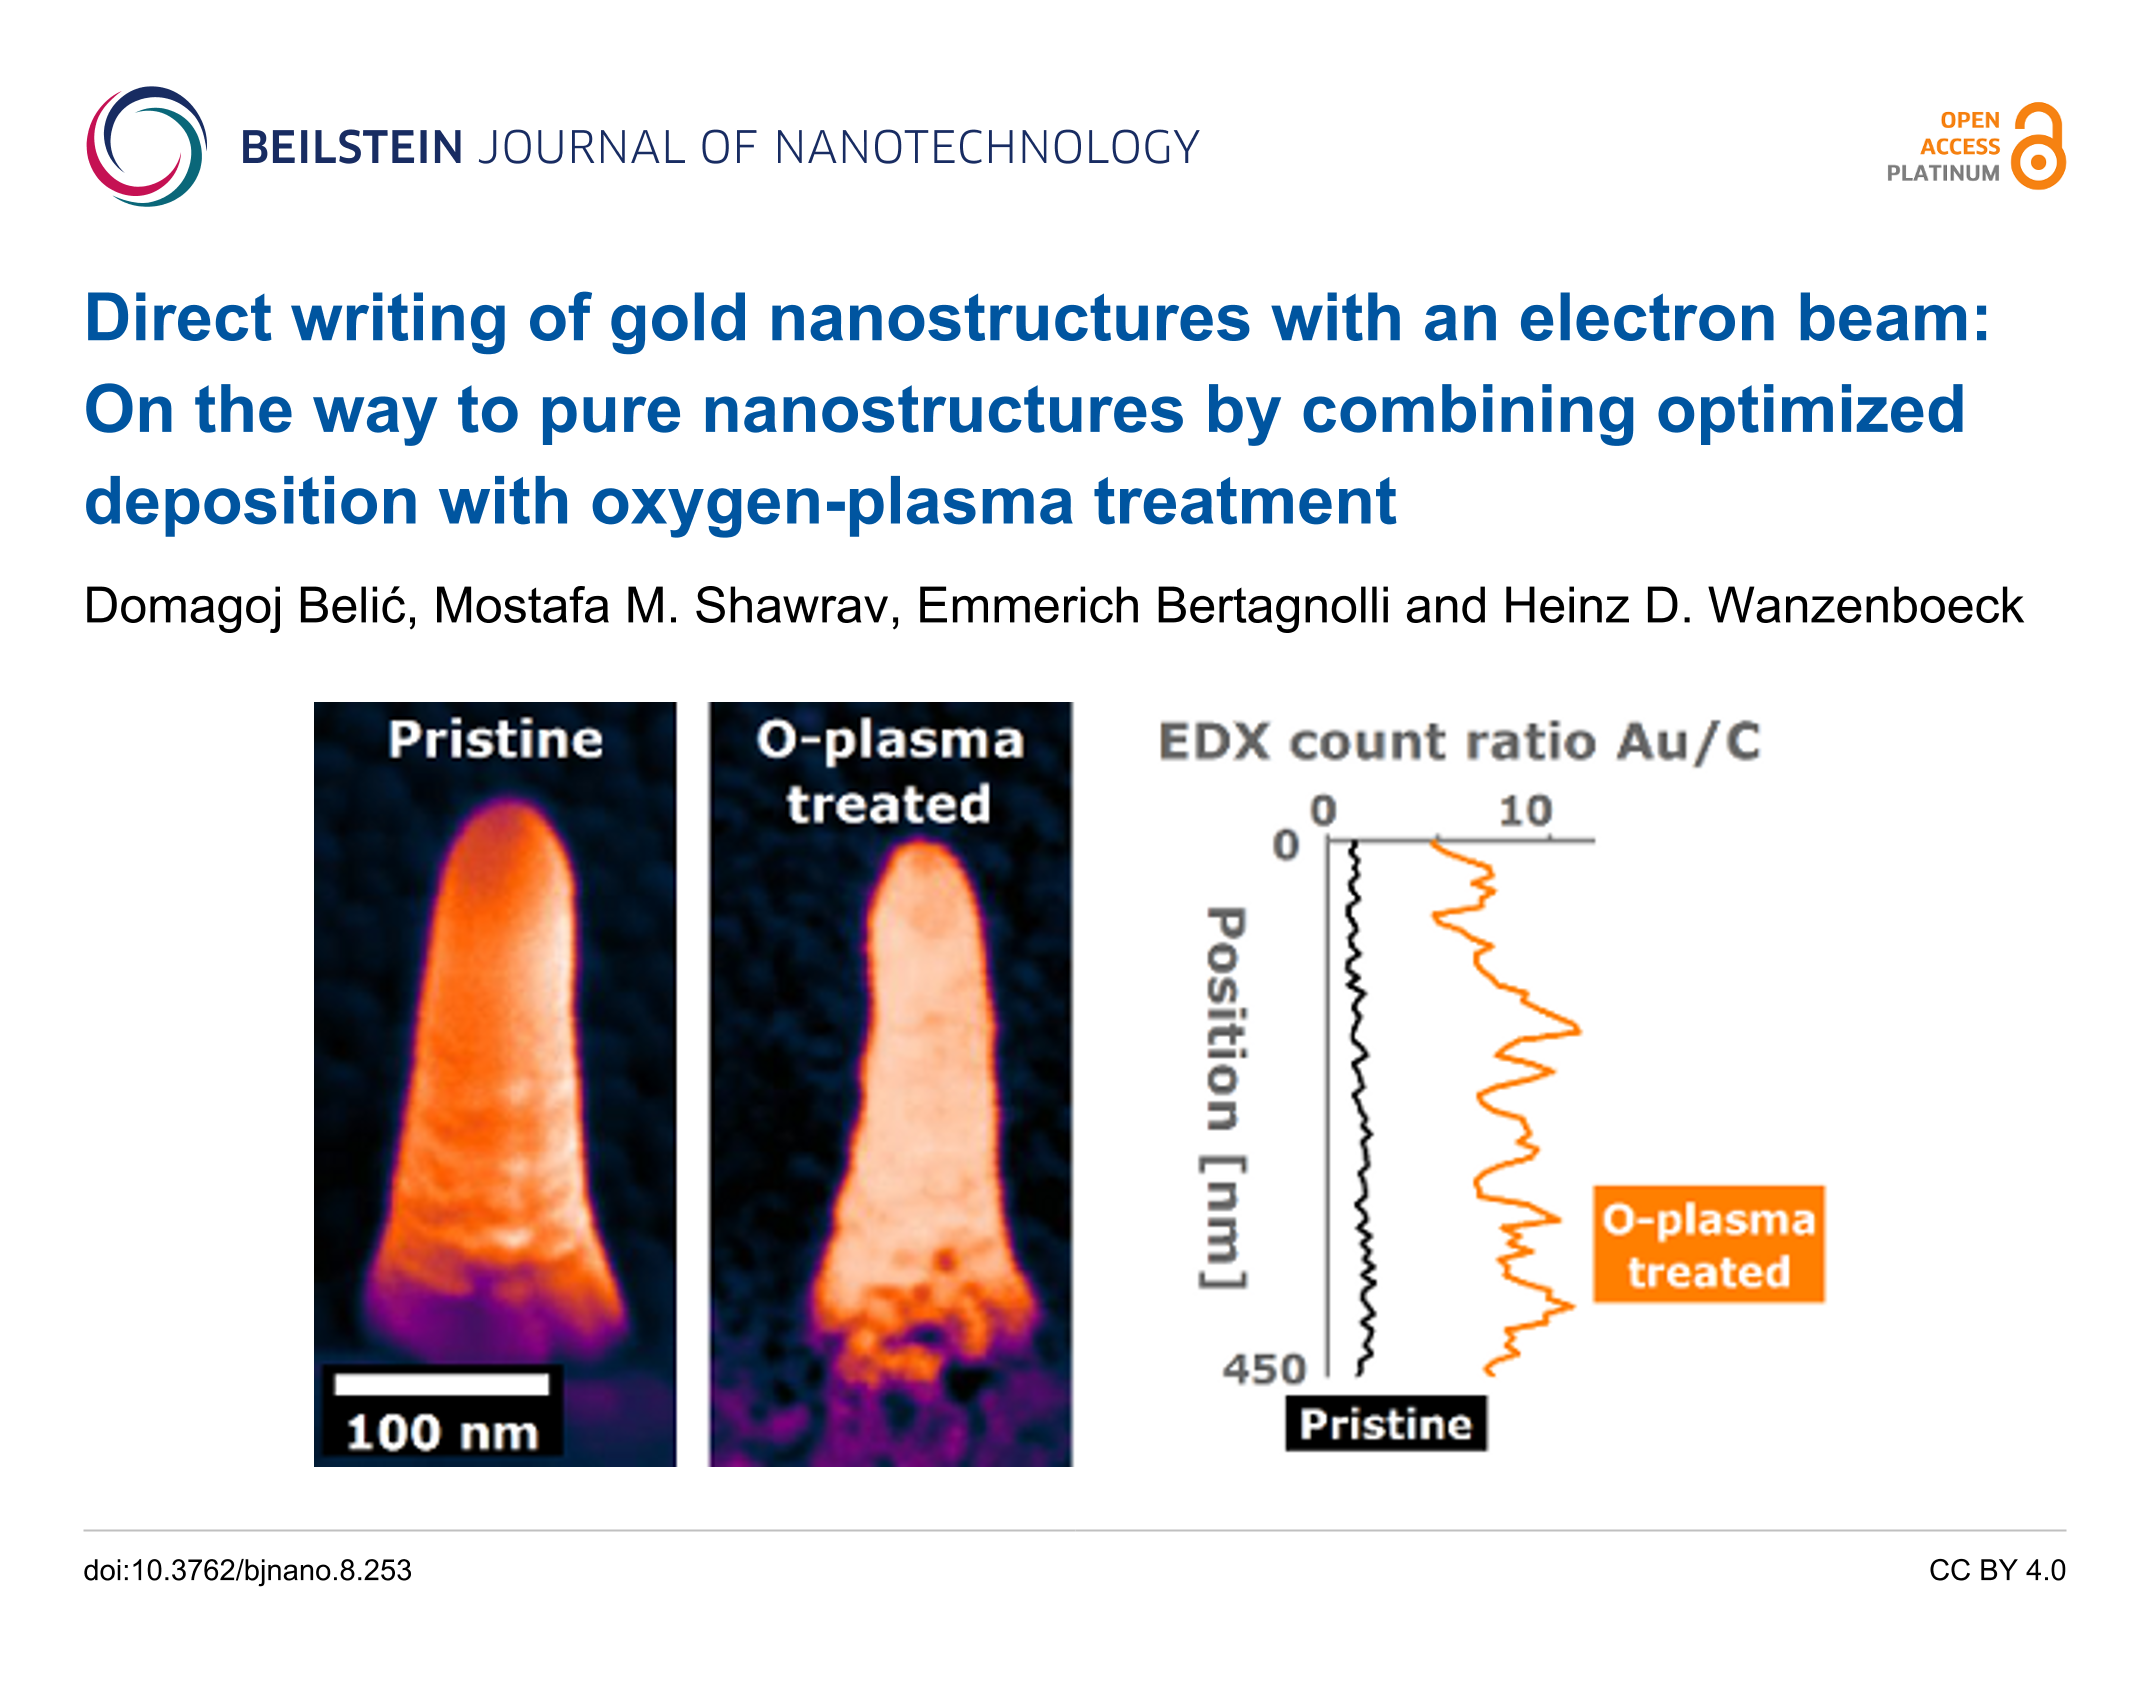 Direct writing of gold nanostructures with an electron beam: On the